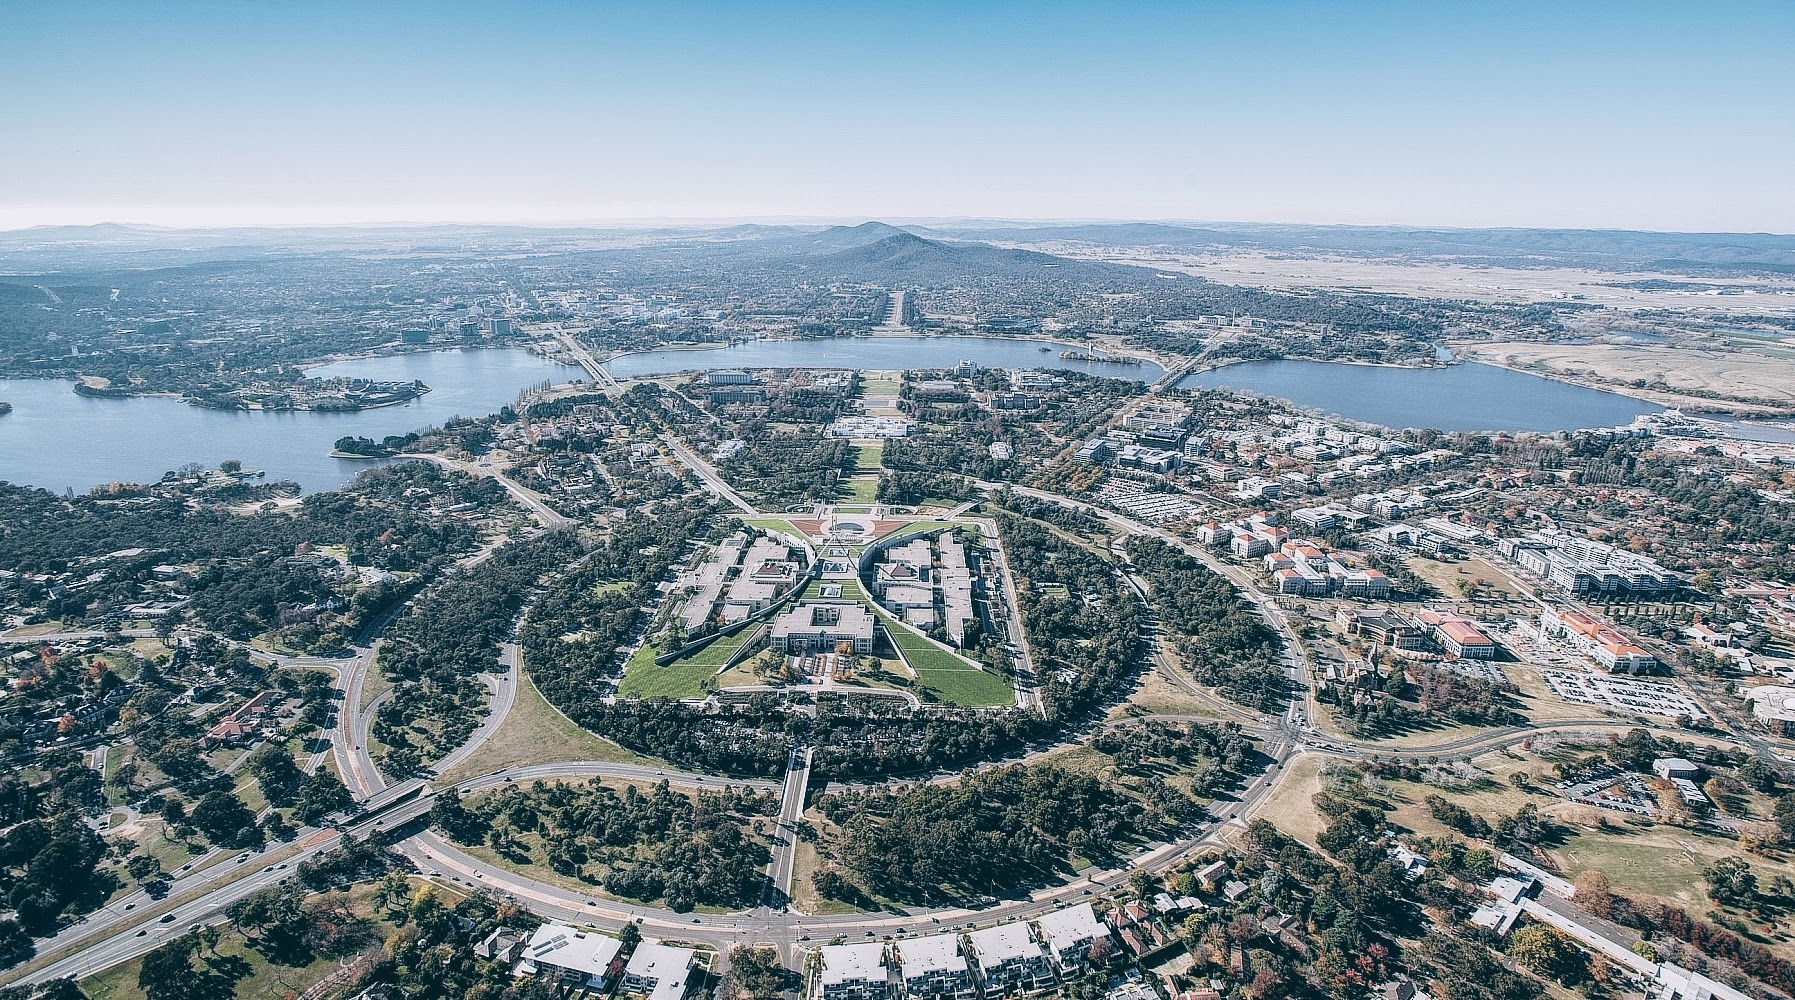 The Weekly Getaway: Canberra's authentic charm